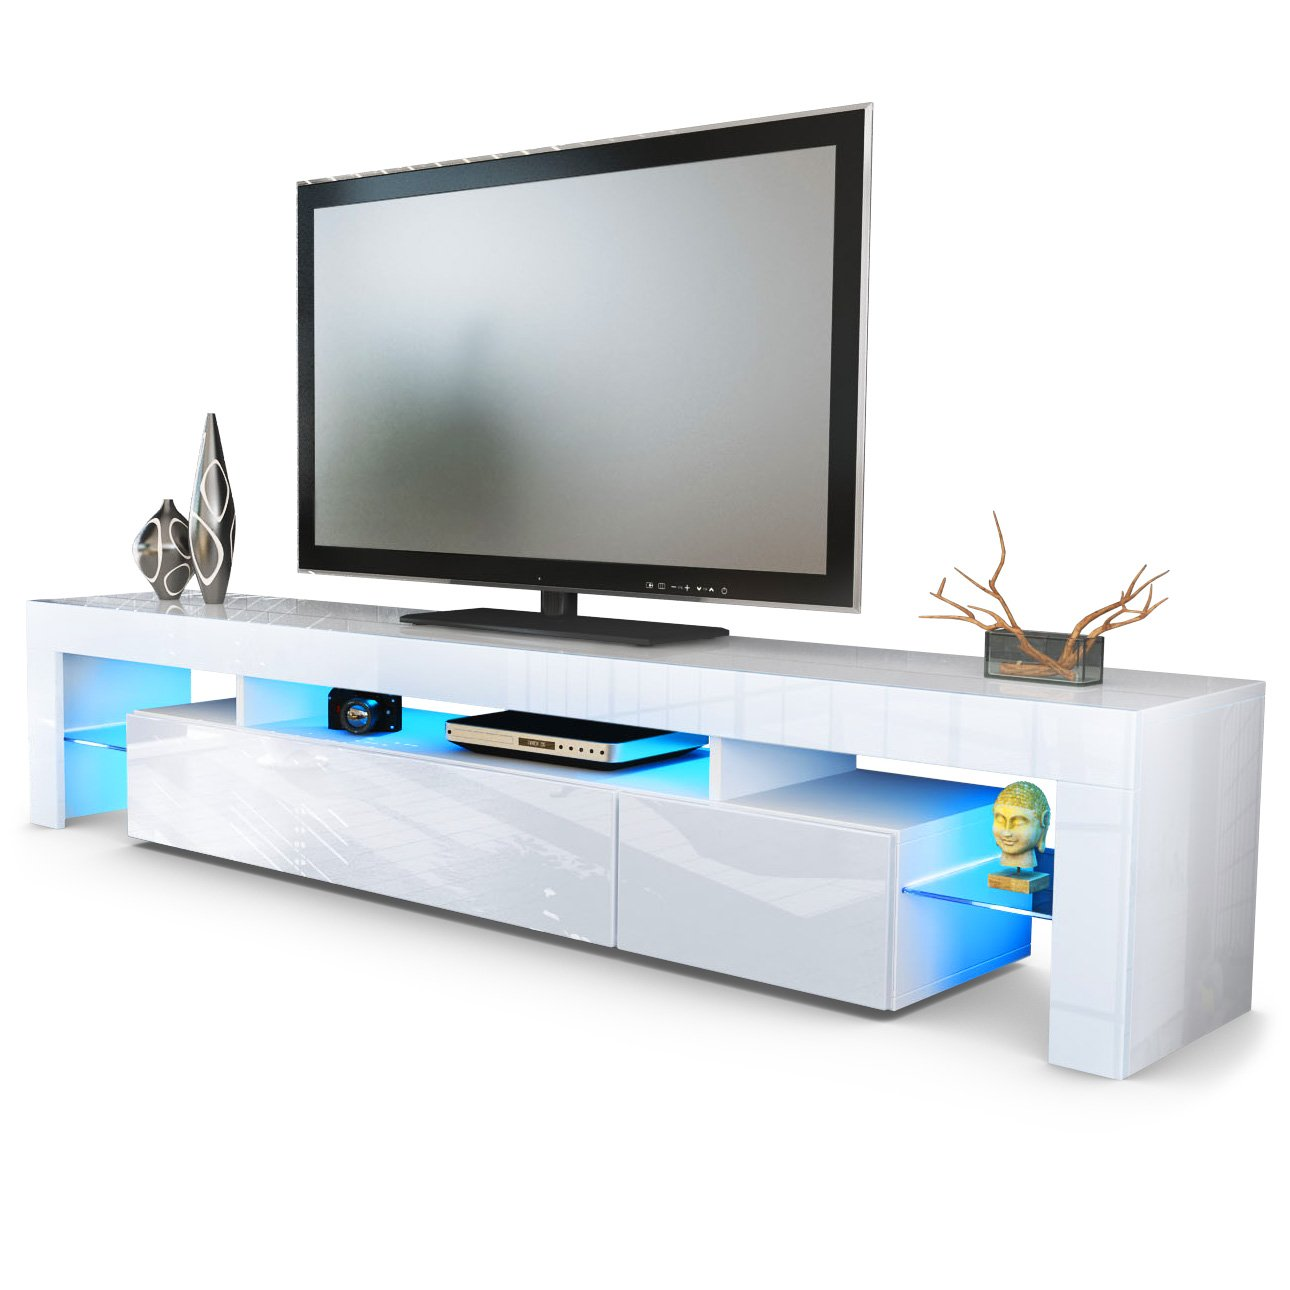 Meuble Tele A Led Meuble Tv Design Contemporain Ch Tellerault # Meubles Tele A Leds